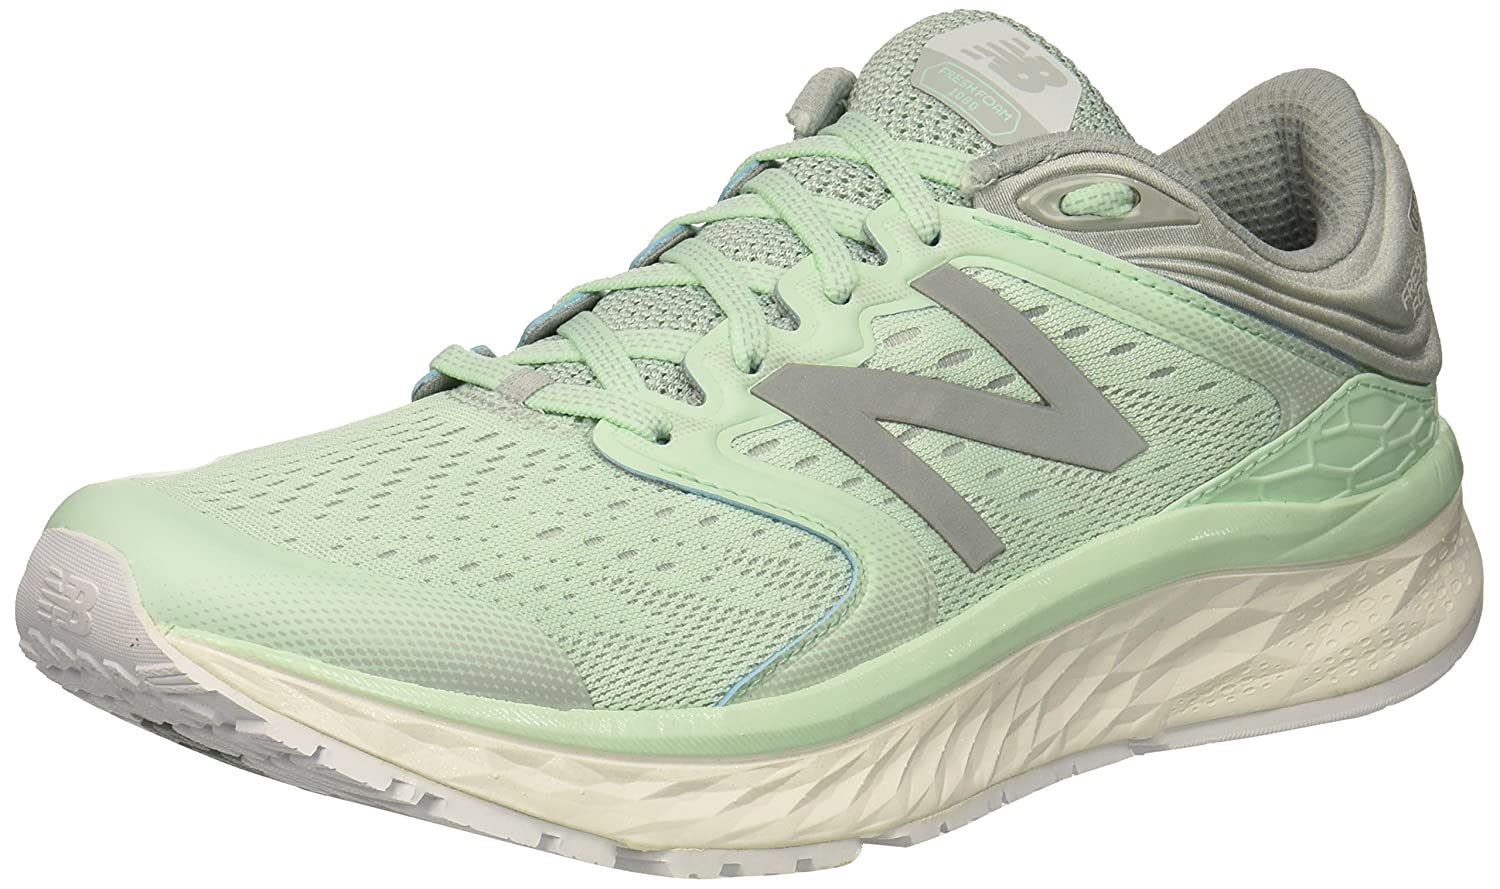 新素材新作 New Balance Women's 2A 13 W1080 Ankle-High Running Shoe US B077PZGPGJ ライトブルー 13 2A US 13 2A US|ライトブルー, 餃子の王国:05431e62 --- kuoying.net